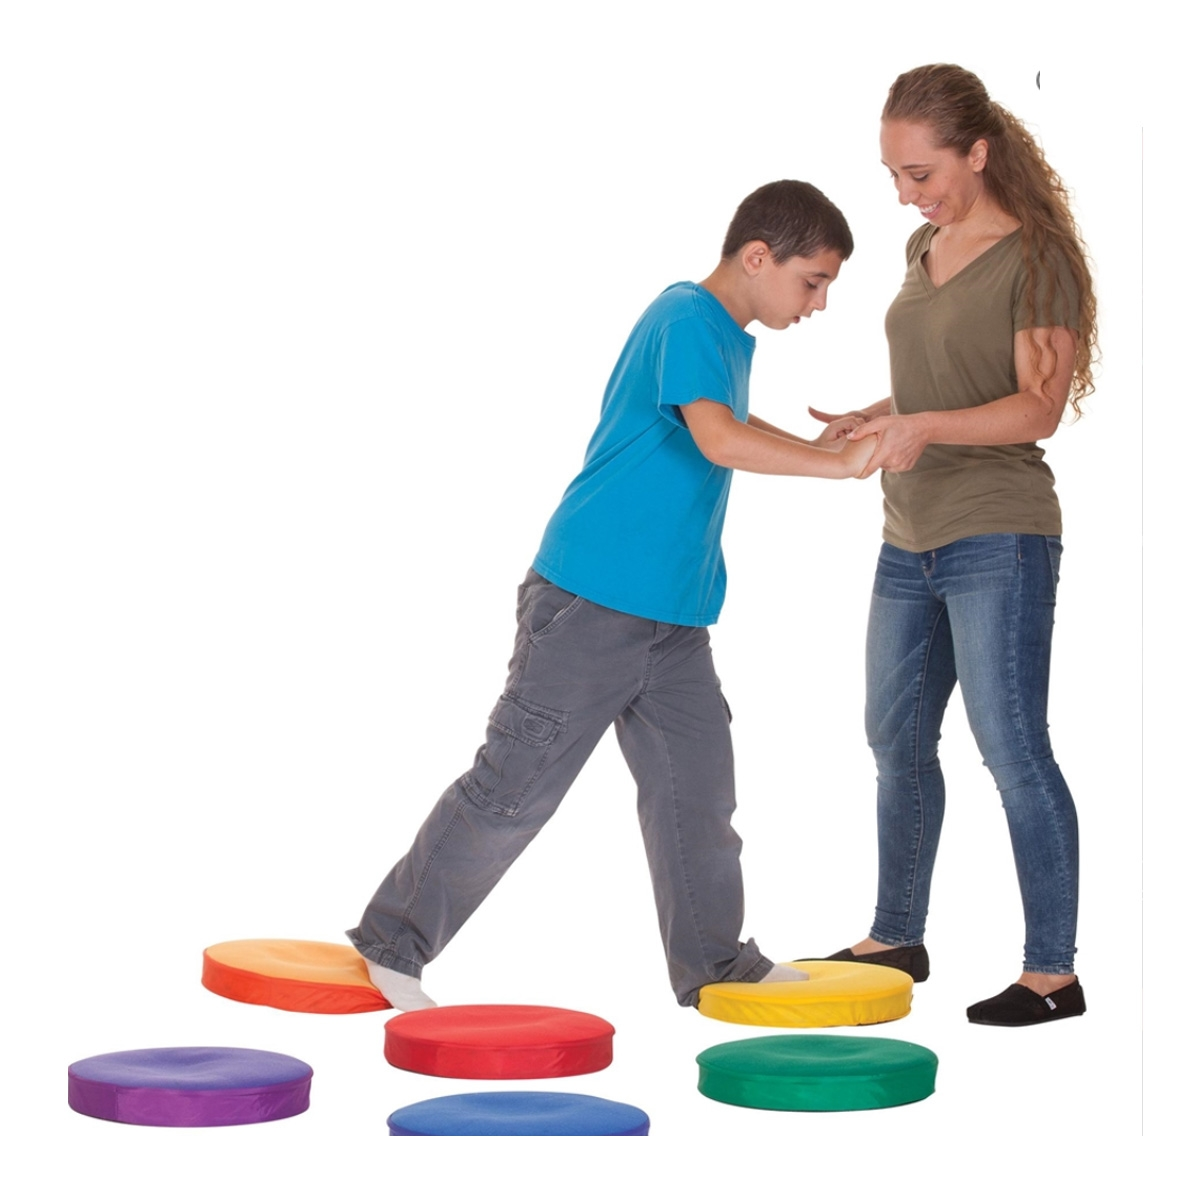 sensory step pads with student and teacher